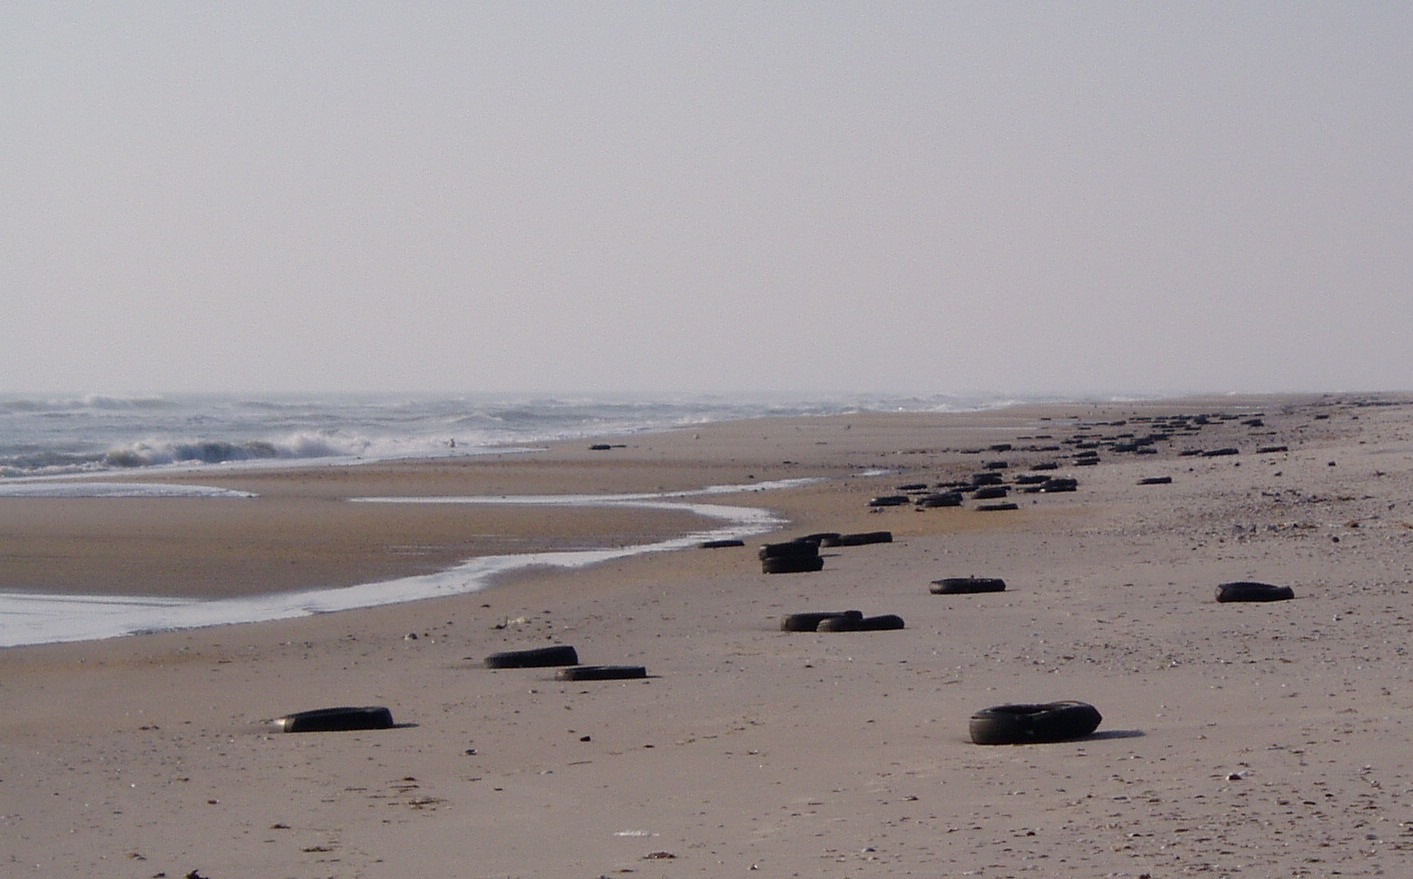 tires on beach 11-09.jpg